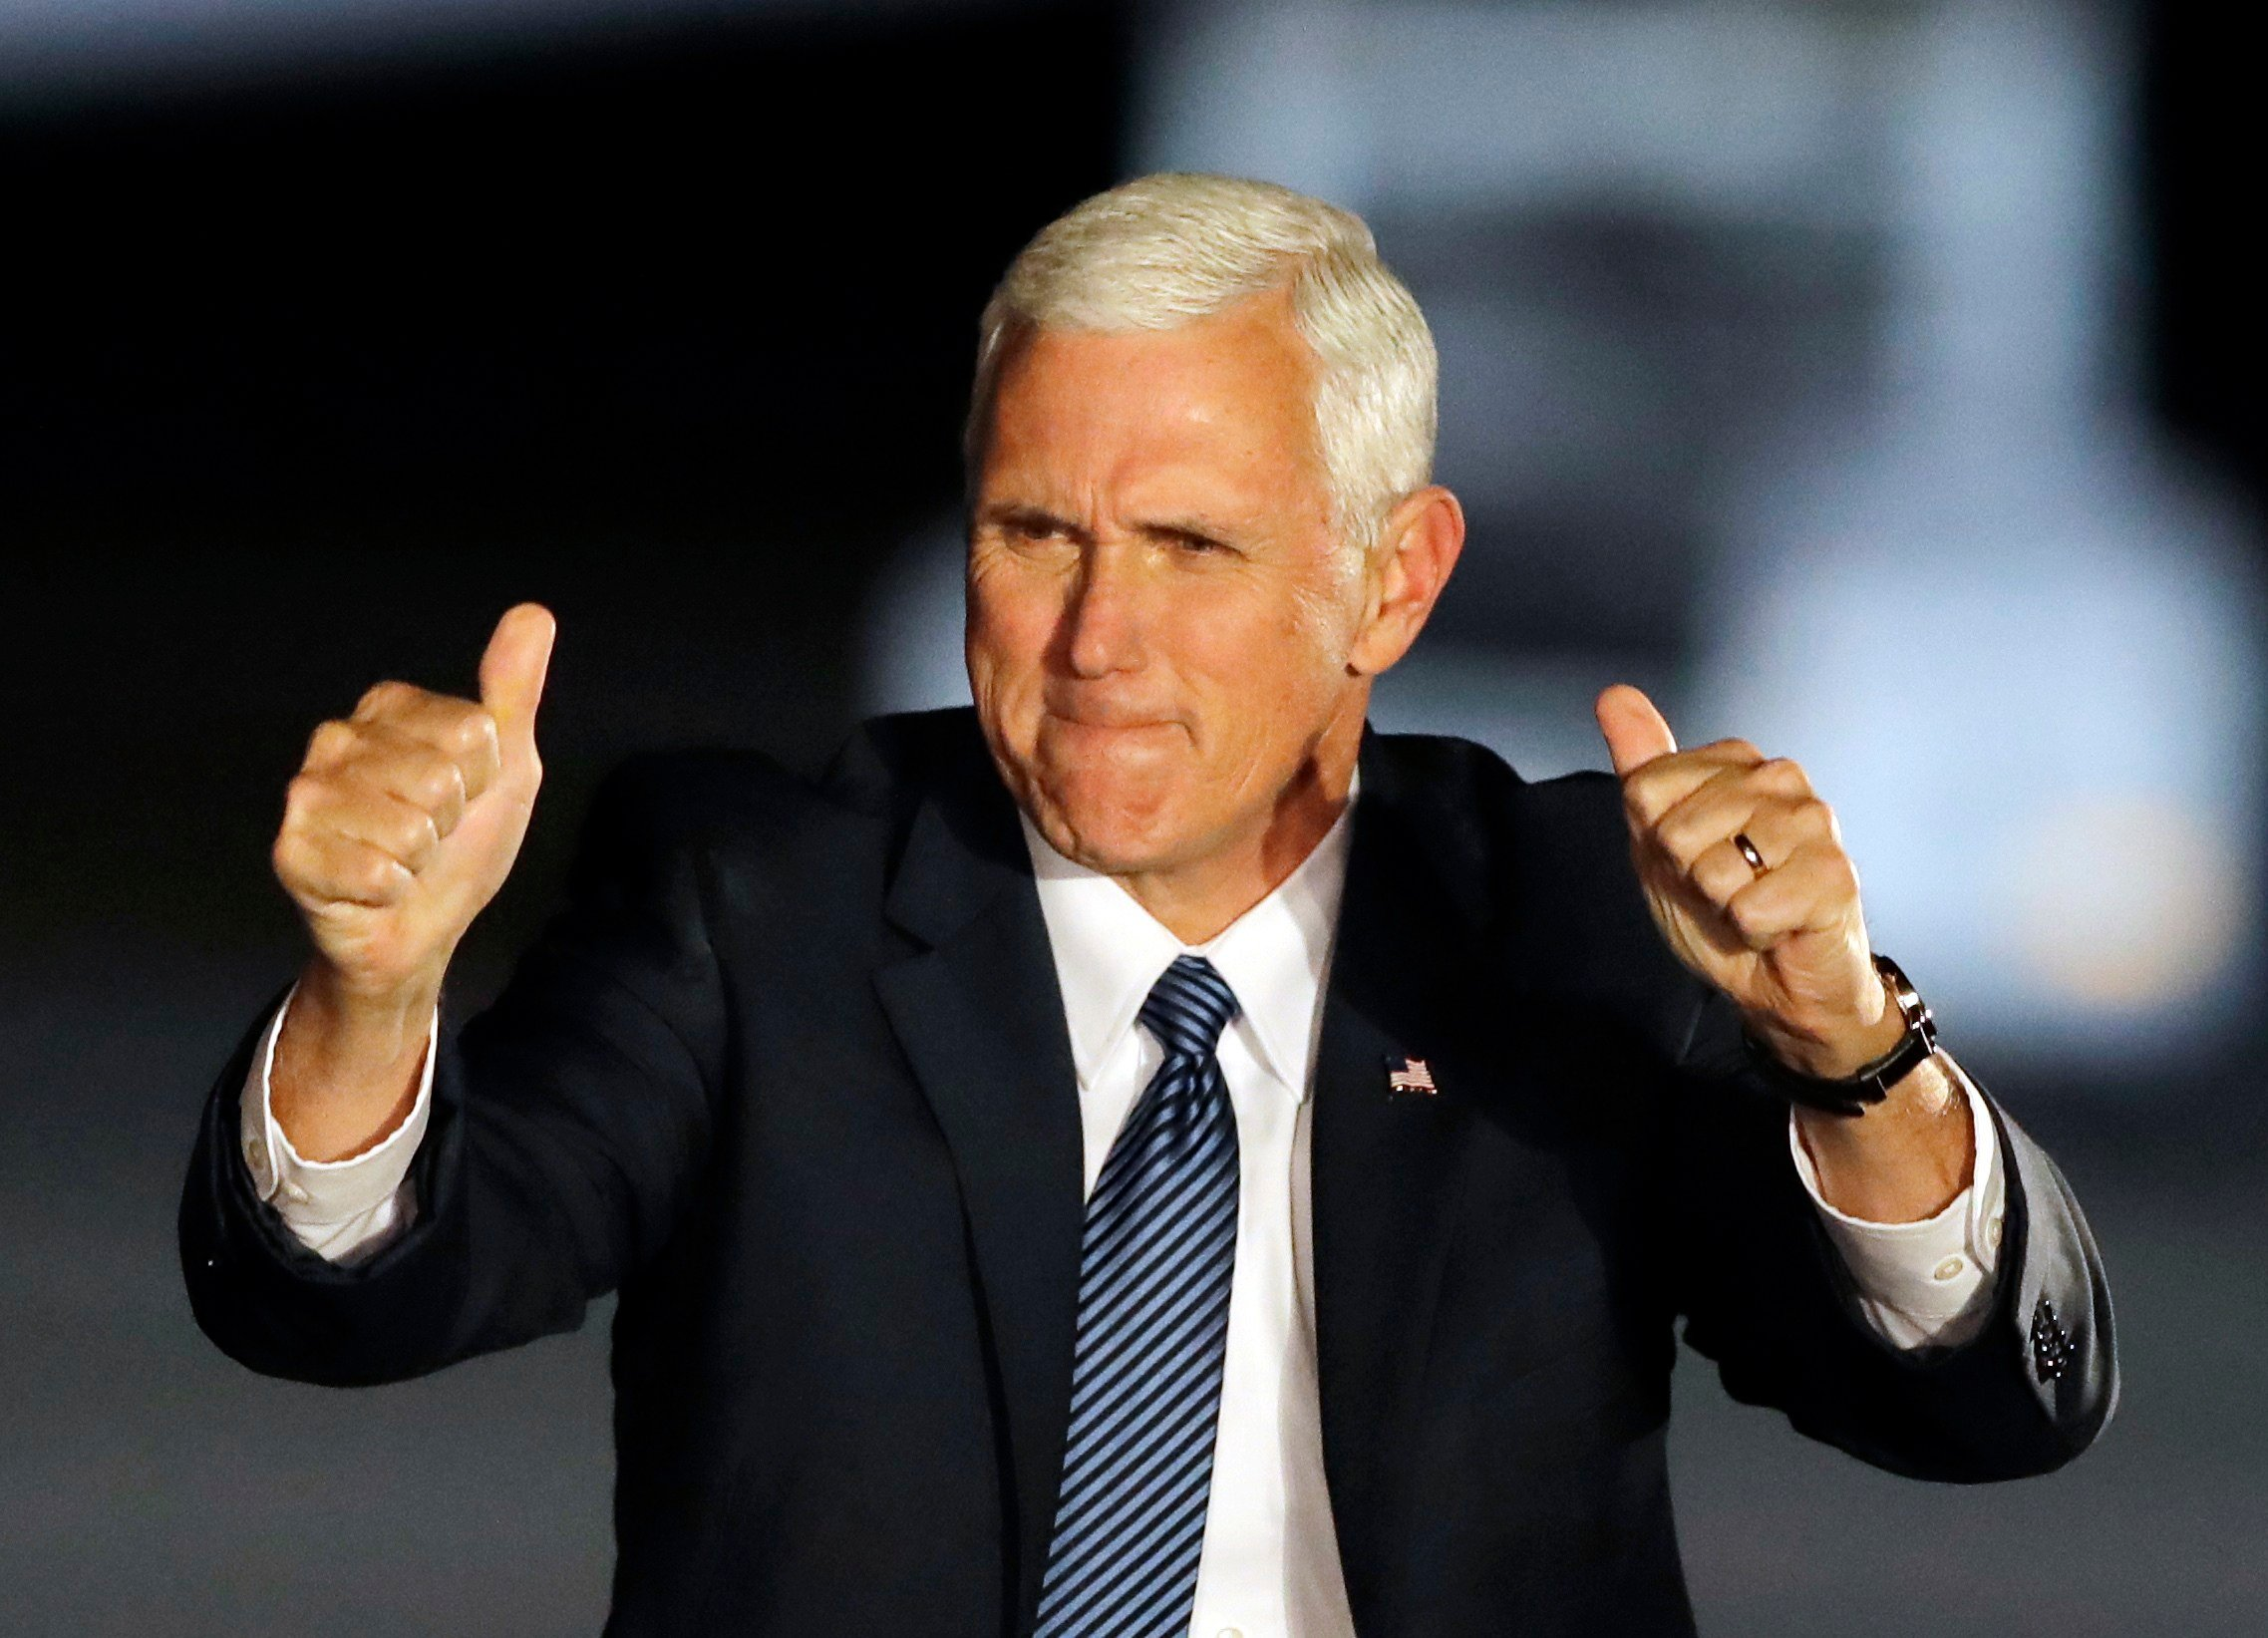 Vice President-elect Mike Pence reacts after speaking at a public rally Thursday, Nov. 10, 2016, in Indianapolis. (AP Photo/Darron Cummings)